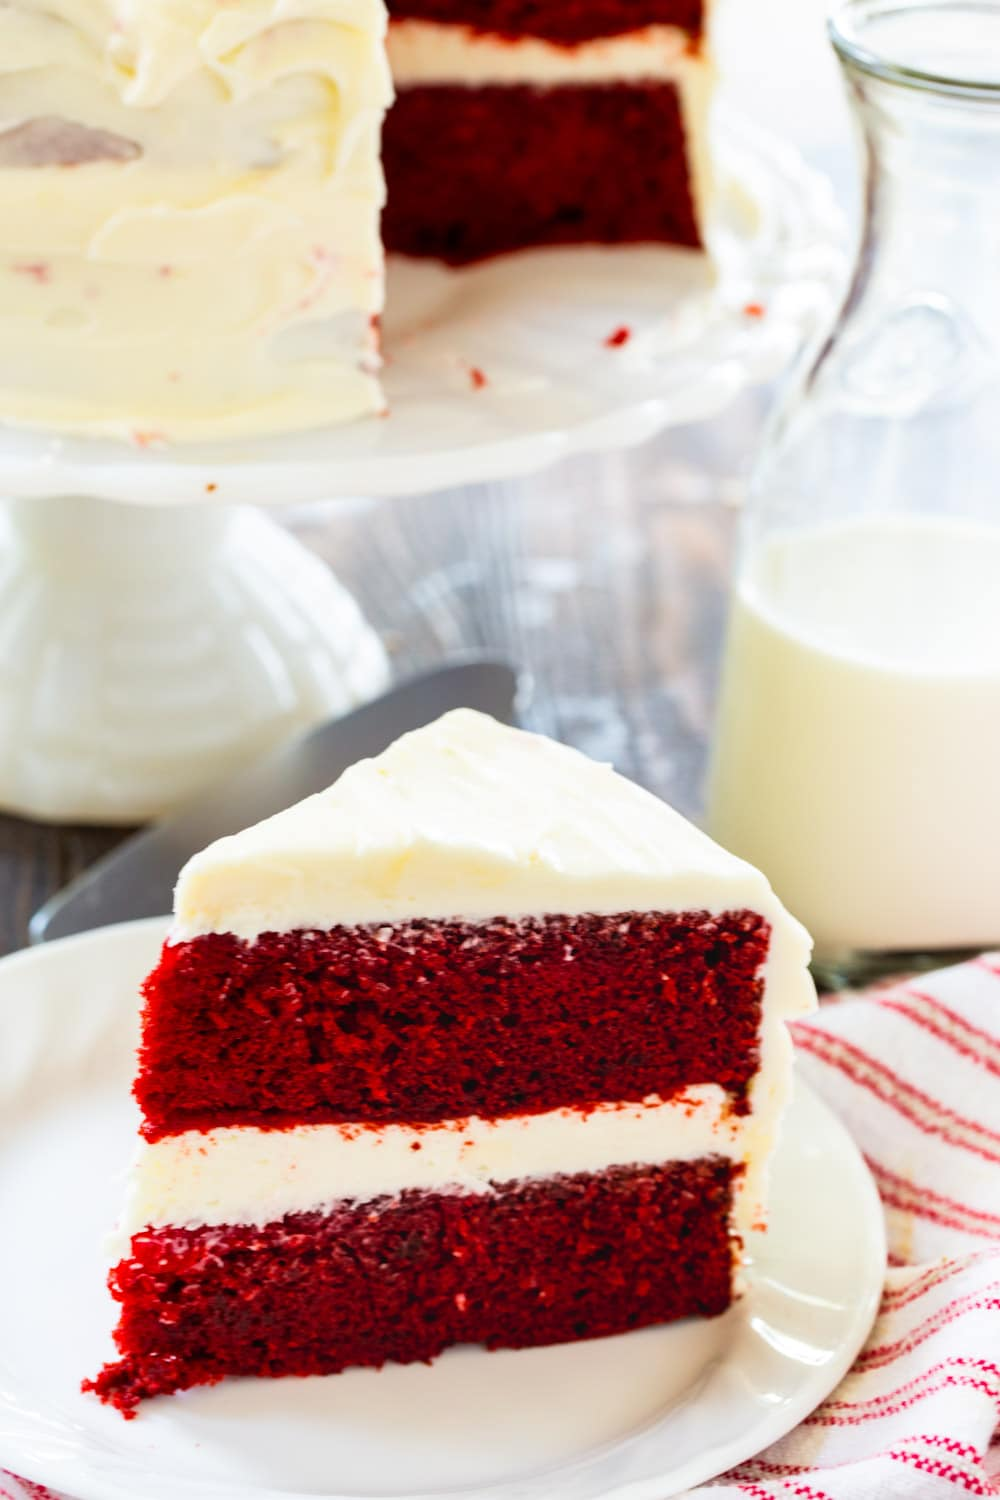 Slice of cake on plate with rest of cake on cake stand in background.